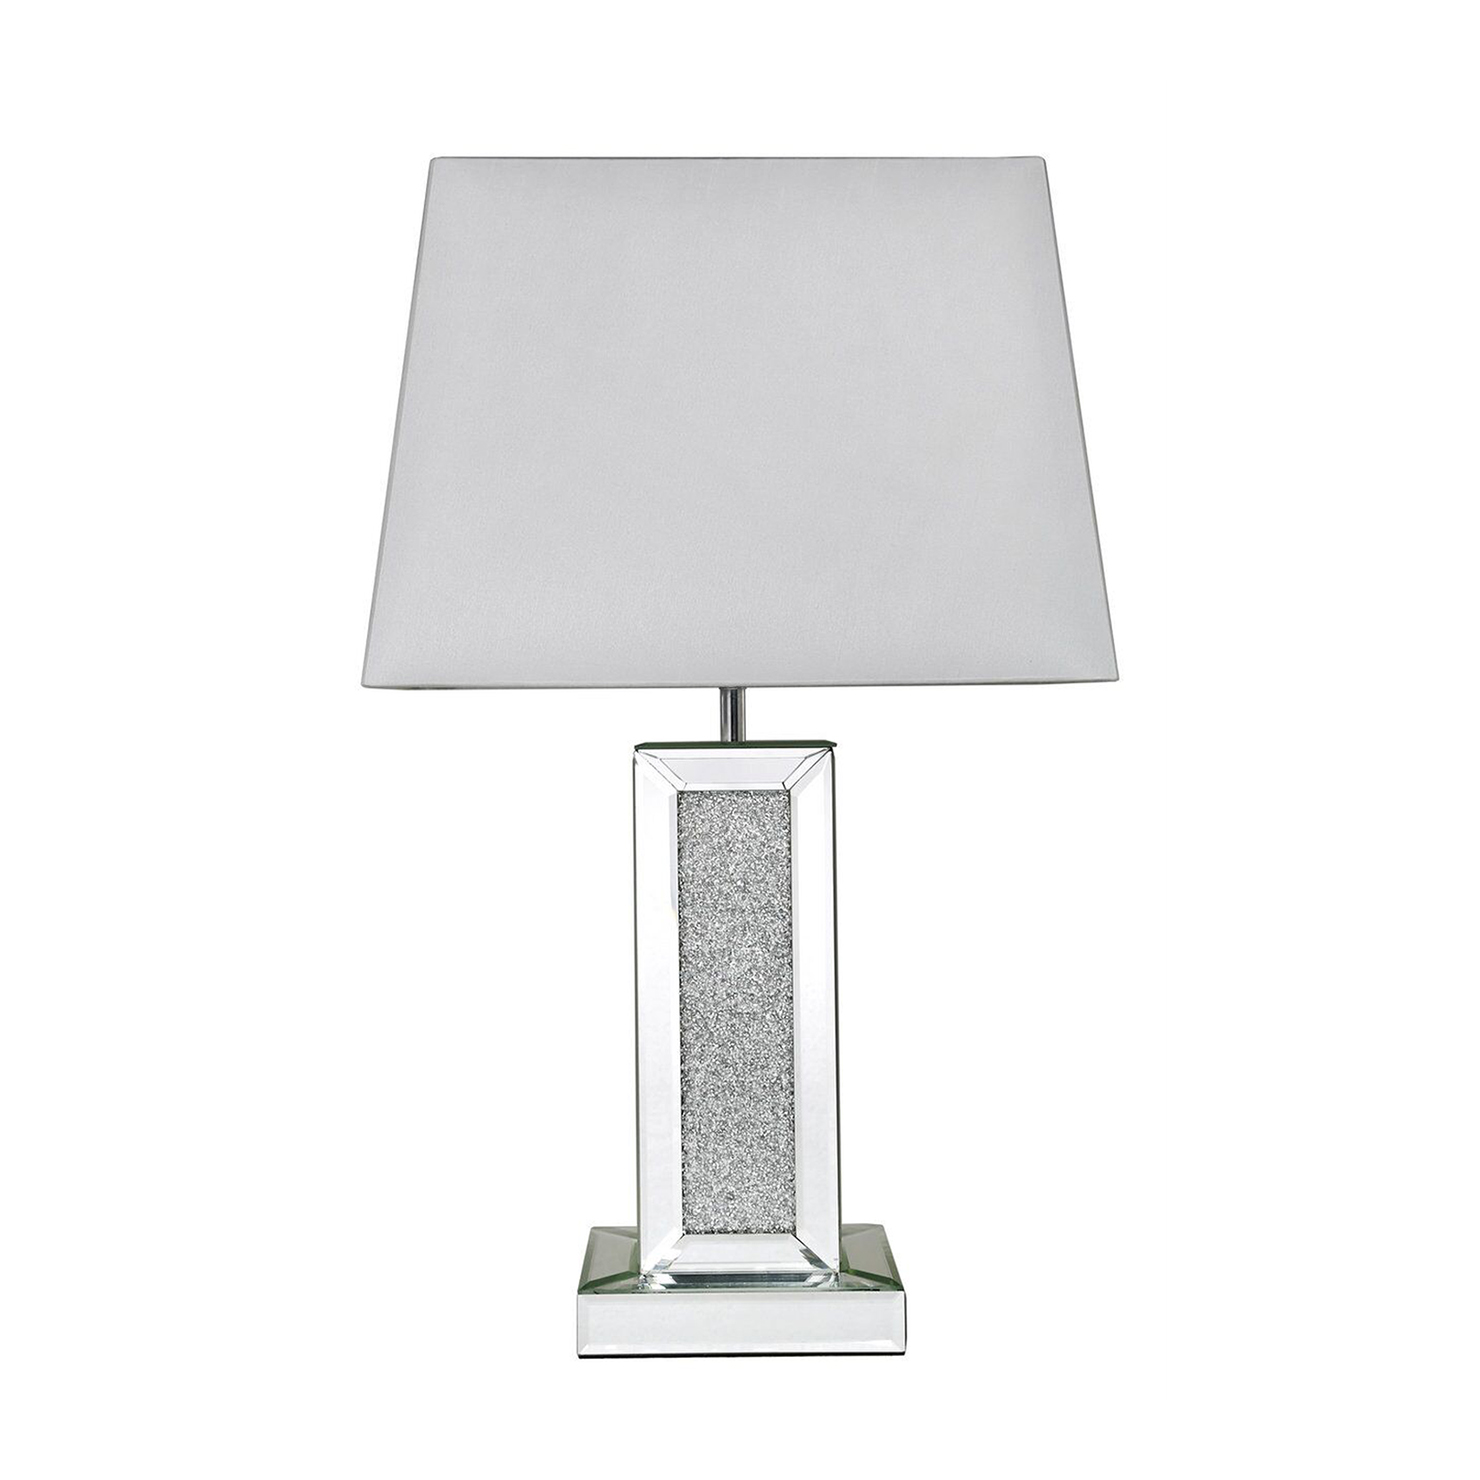 Mirror Crystal Diamond Rectangle Table Lamp With White Shade